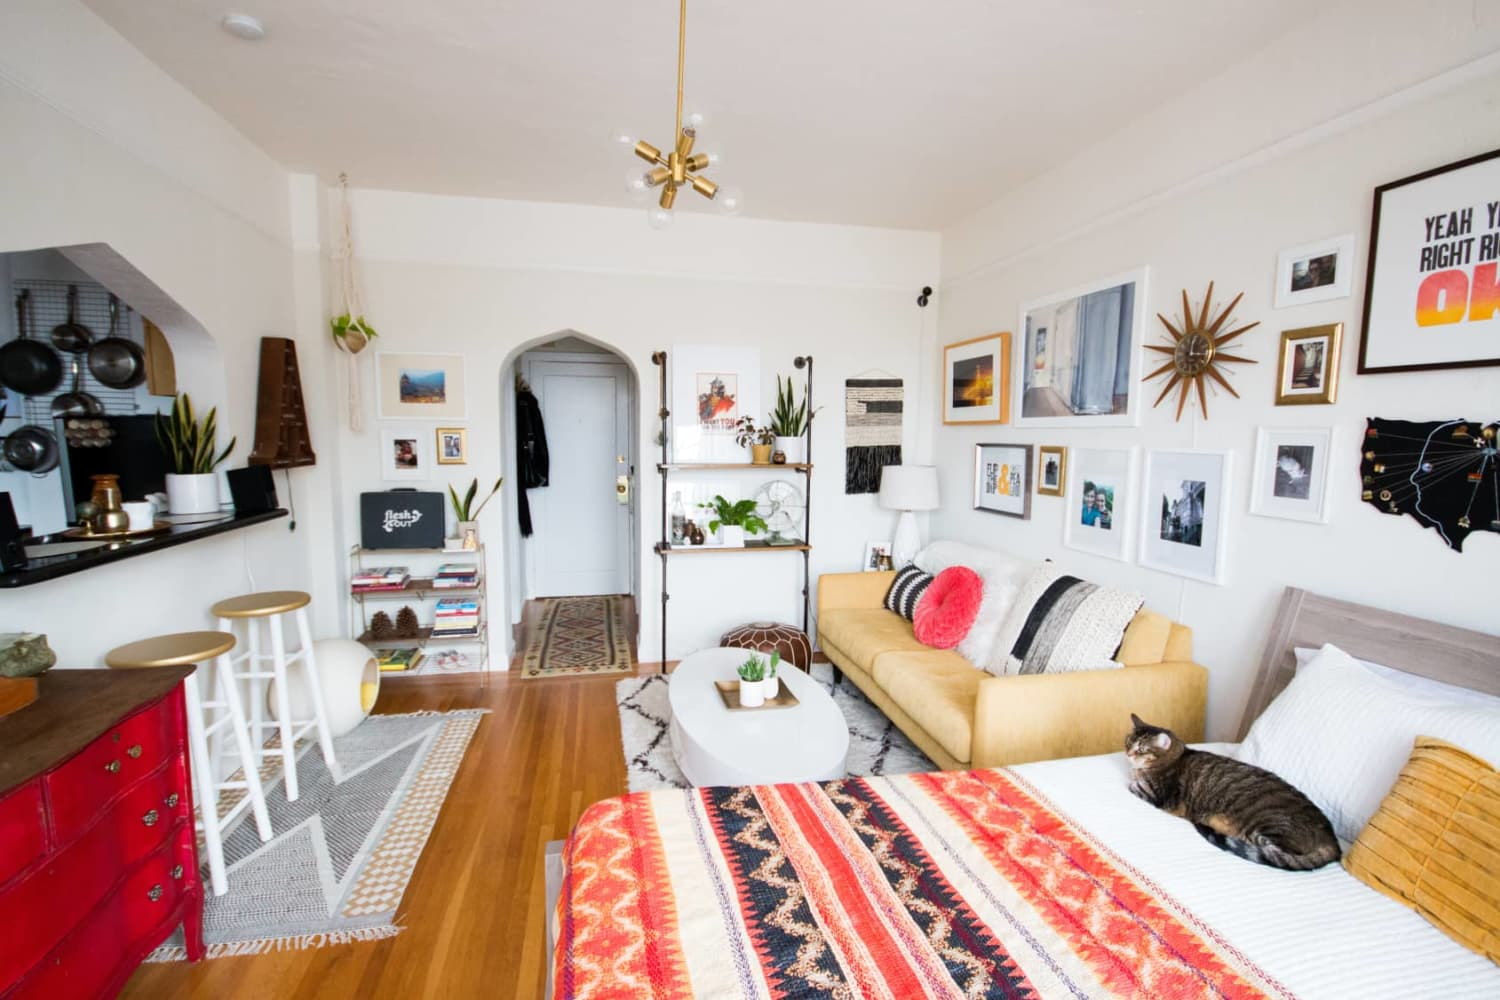 8 Quick and Easy Cleaning & Laundry Tips that Airbnb Hosts Swear By